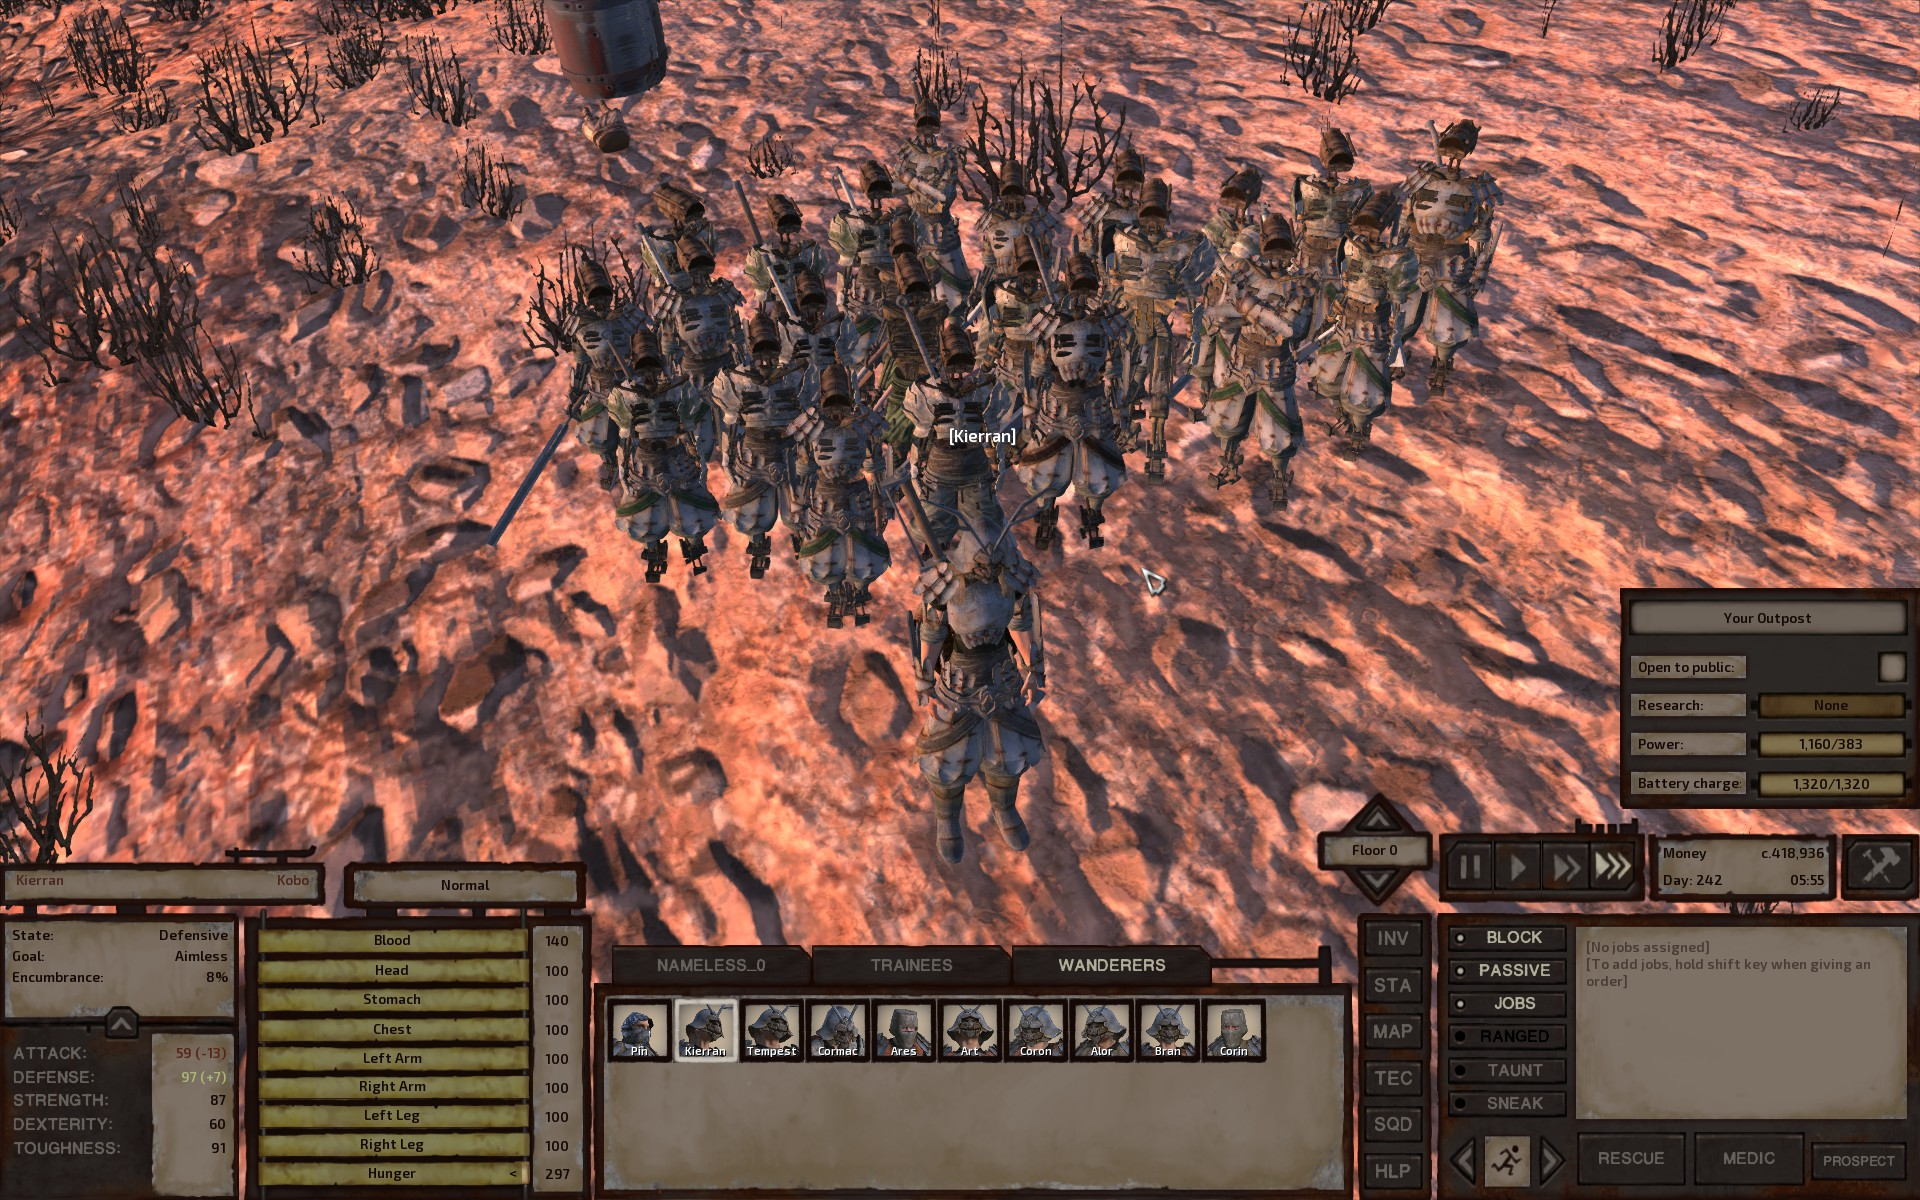 How do I deal with a horde of broken skeleton bodyguards